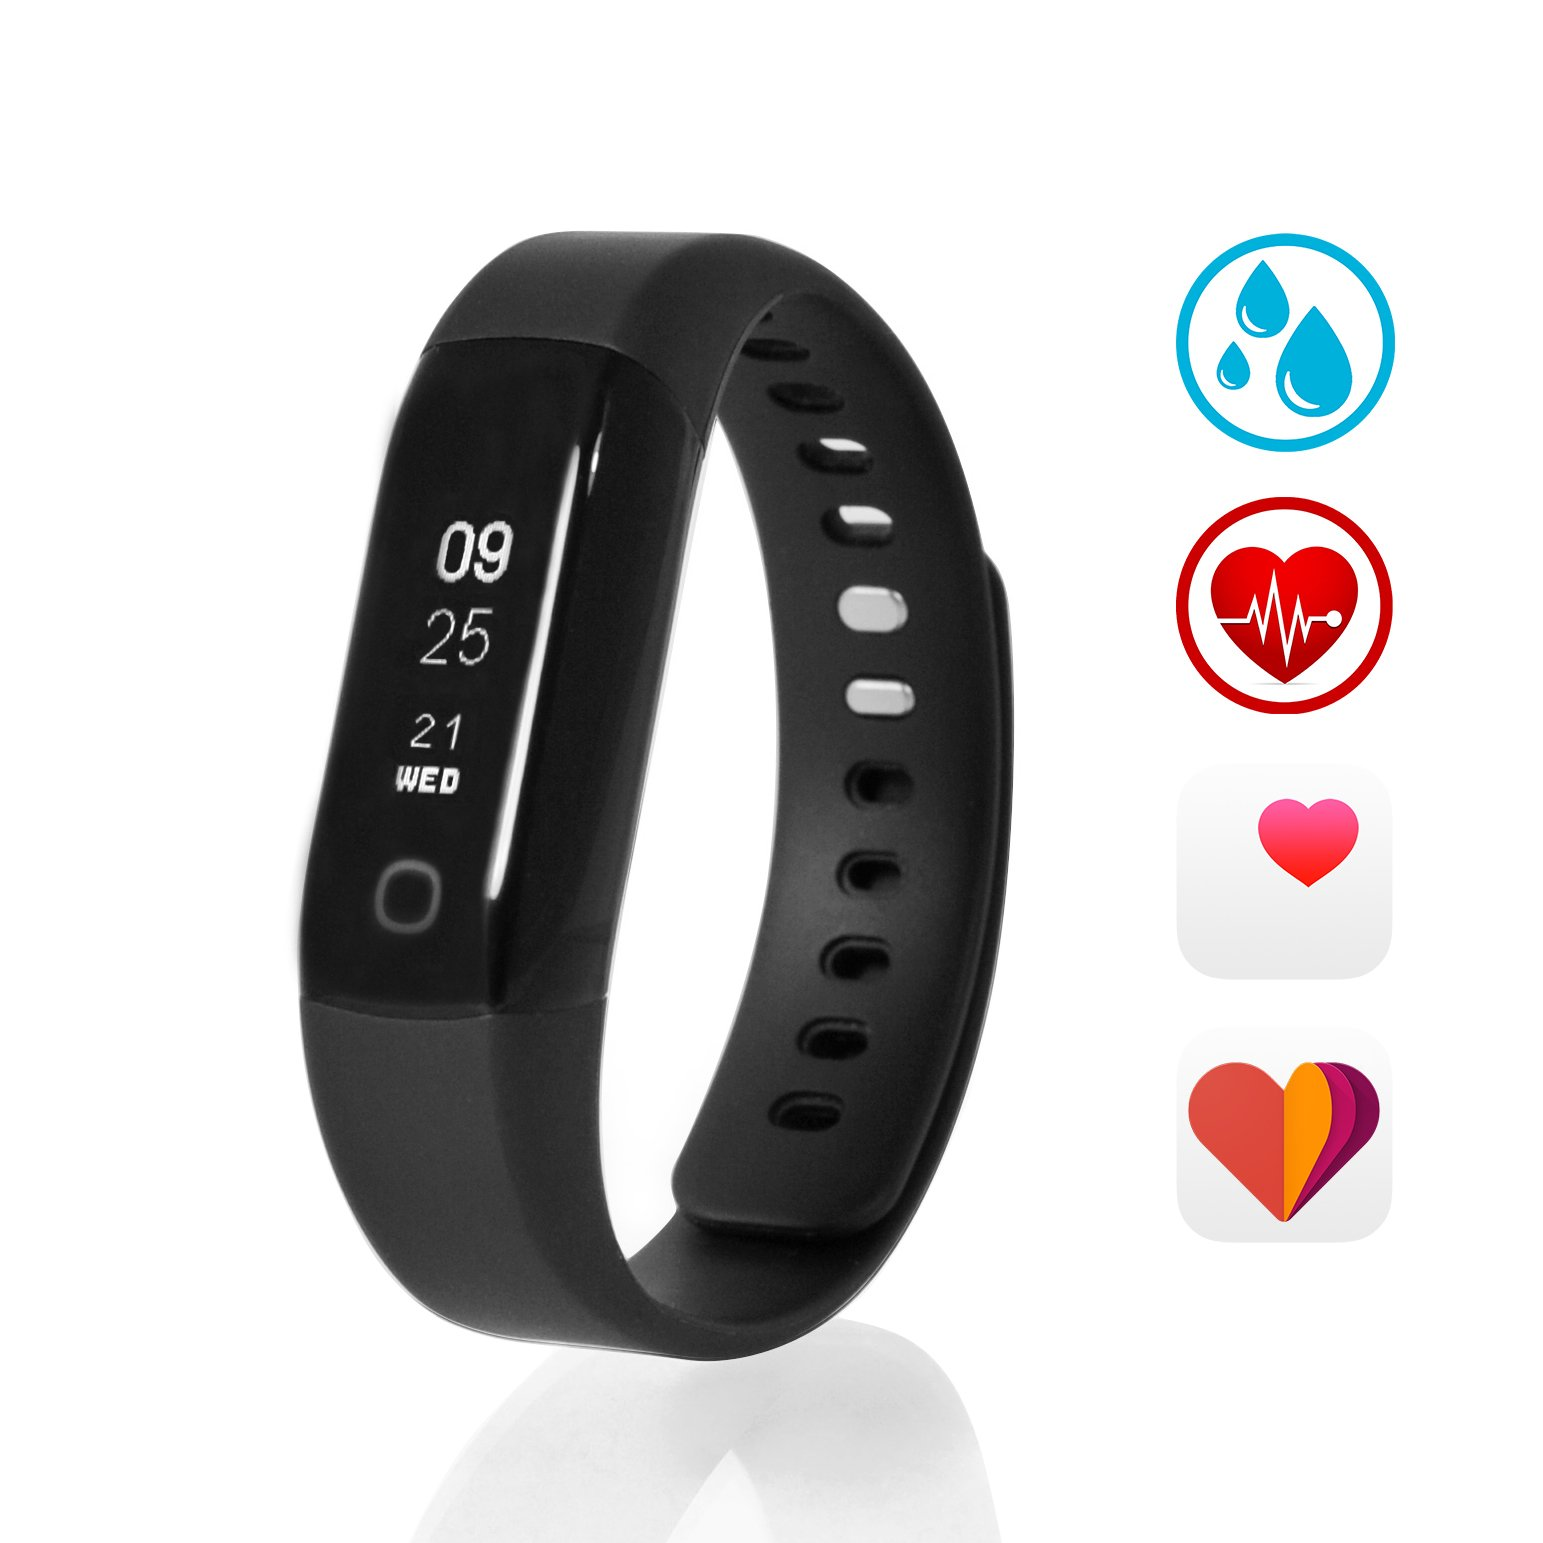 Sharon Activity Tracker | Bluetooth Smart Bracelet Watch Sports Pedometer Sleep Health Fitness Tracker Activity Wristband | includes black and red wristband | Data transfer to SwissMed App for iOS, Android and Microsoft, e.g. with iPhone 7, iPhone 7 Plus, Samsung Galaxy S7 S7 Edge S8, Huawei P9 Mate 9, Windows Phone